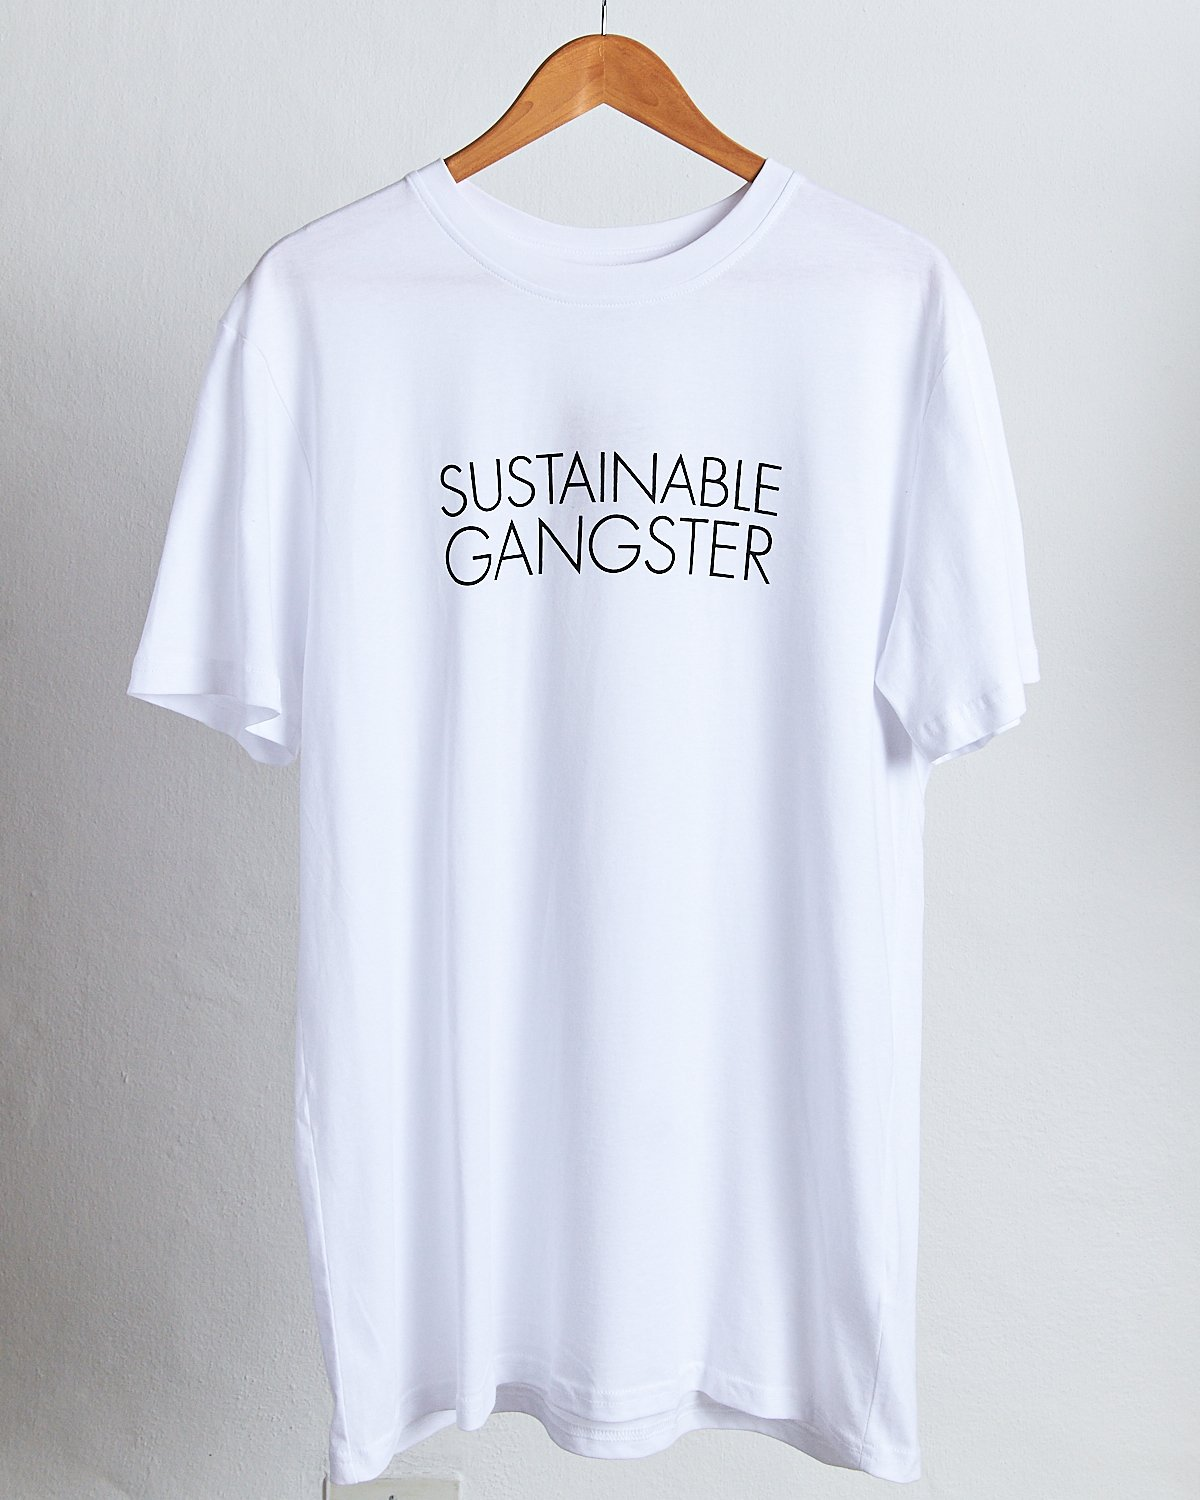 Sustainable Gangster Cotton T-Shirt (unisex)